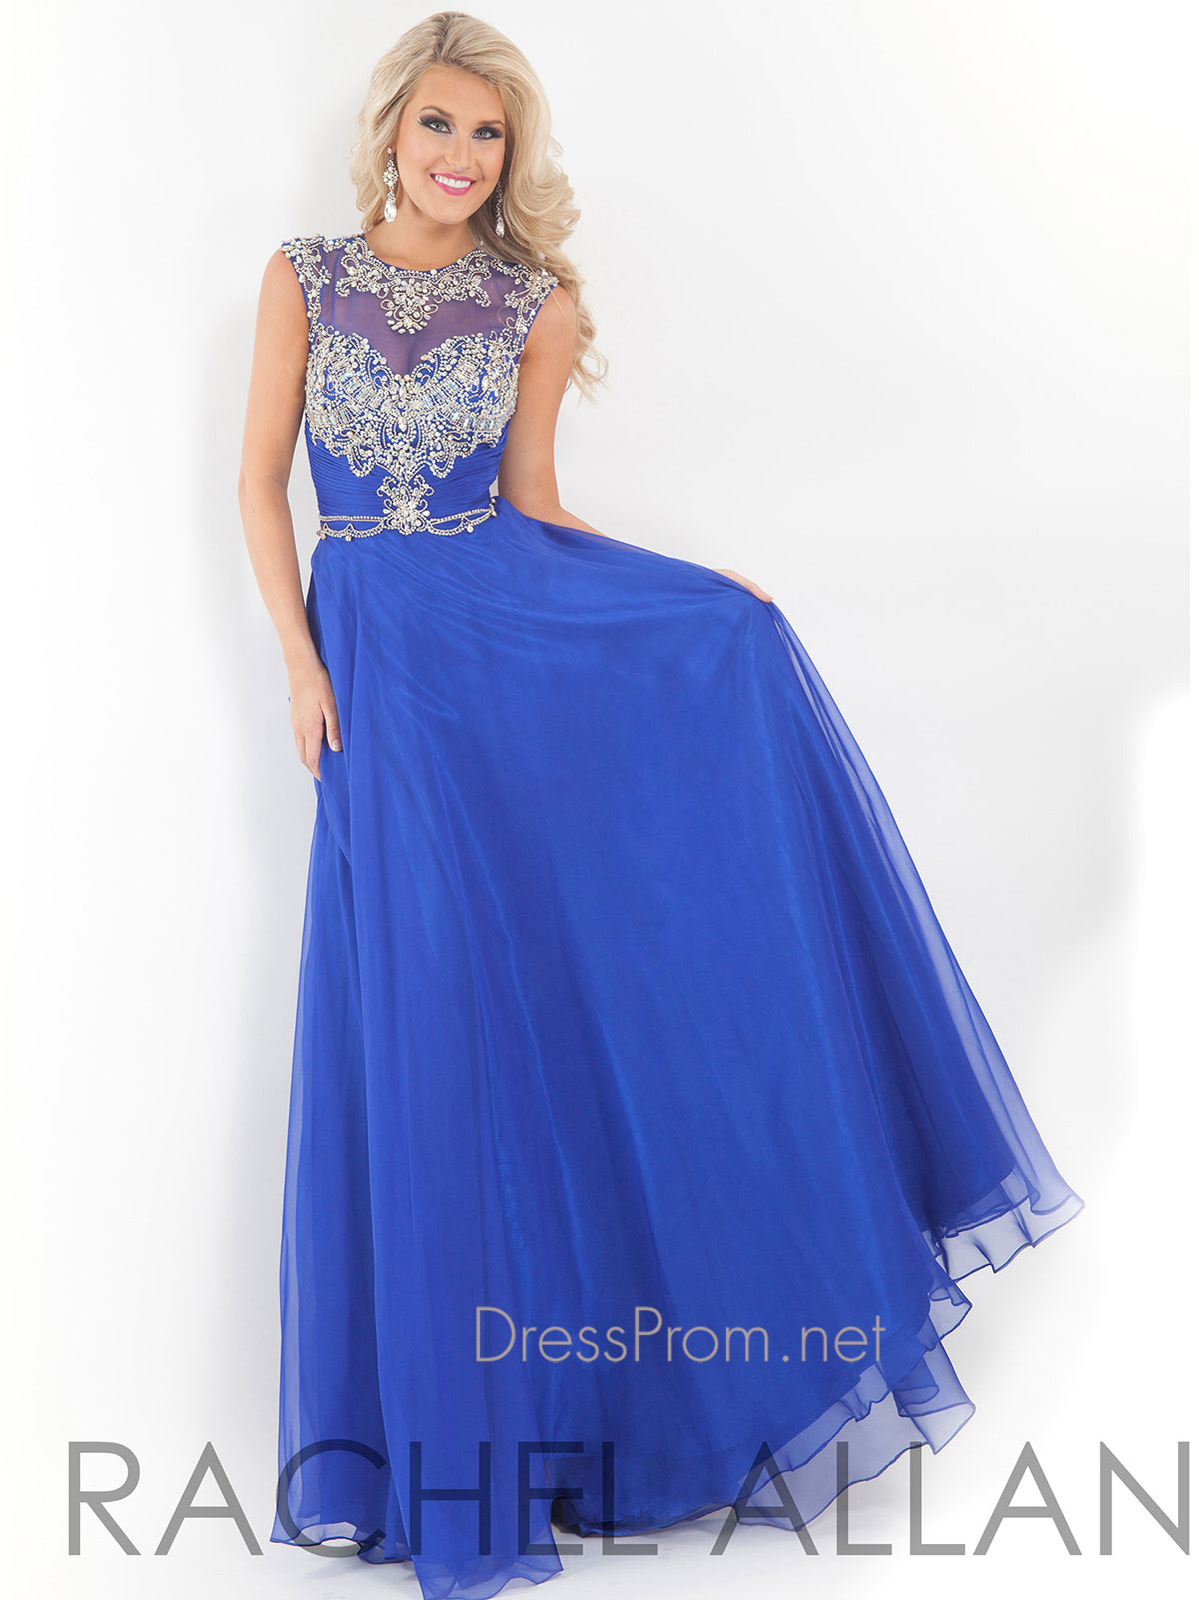 Prom dresses rachel allan homecoming